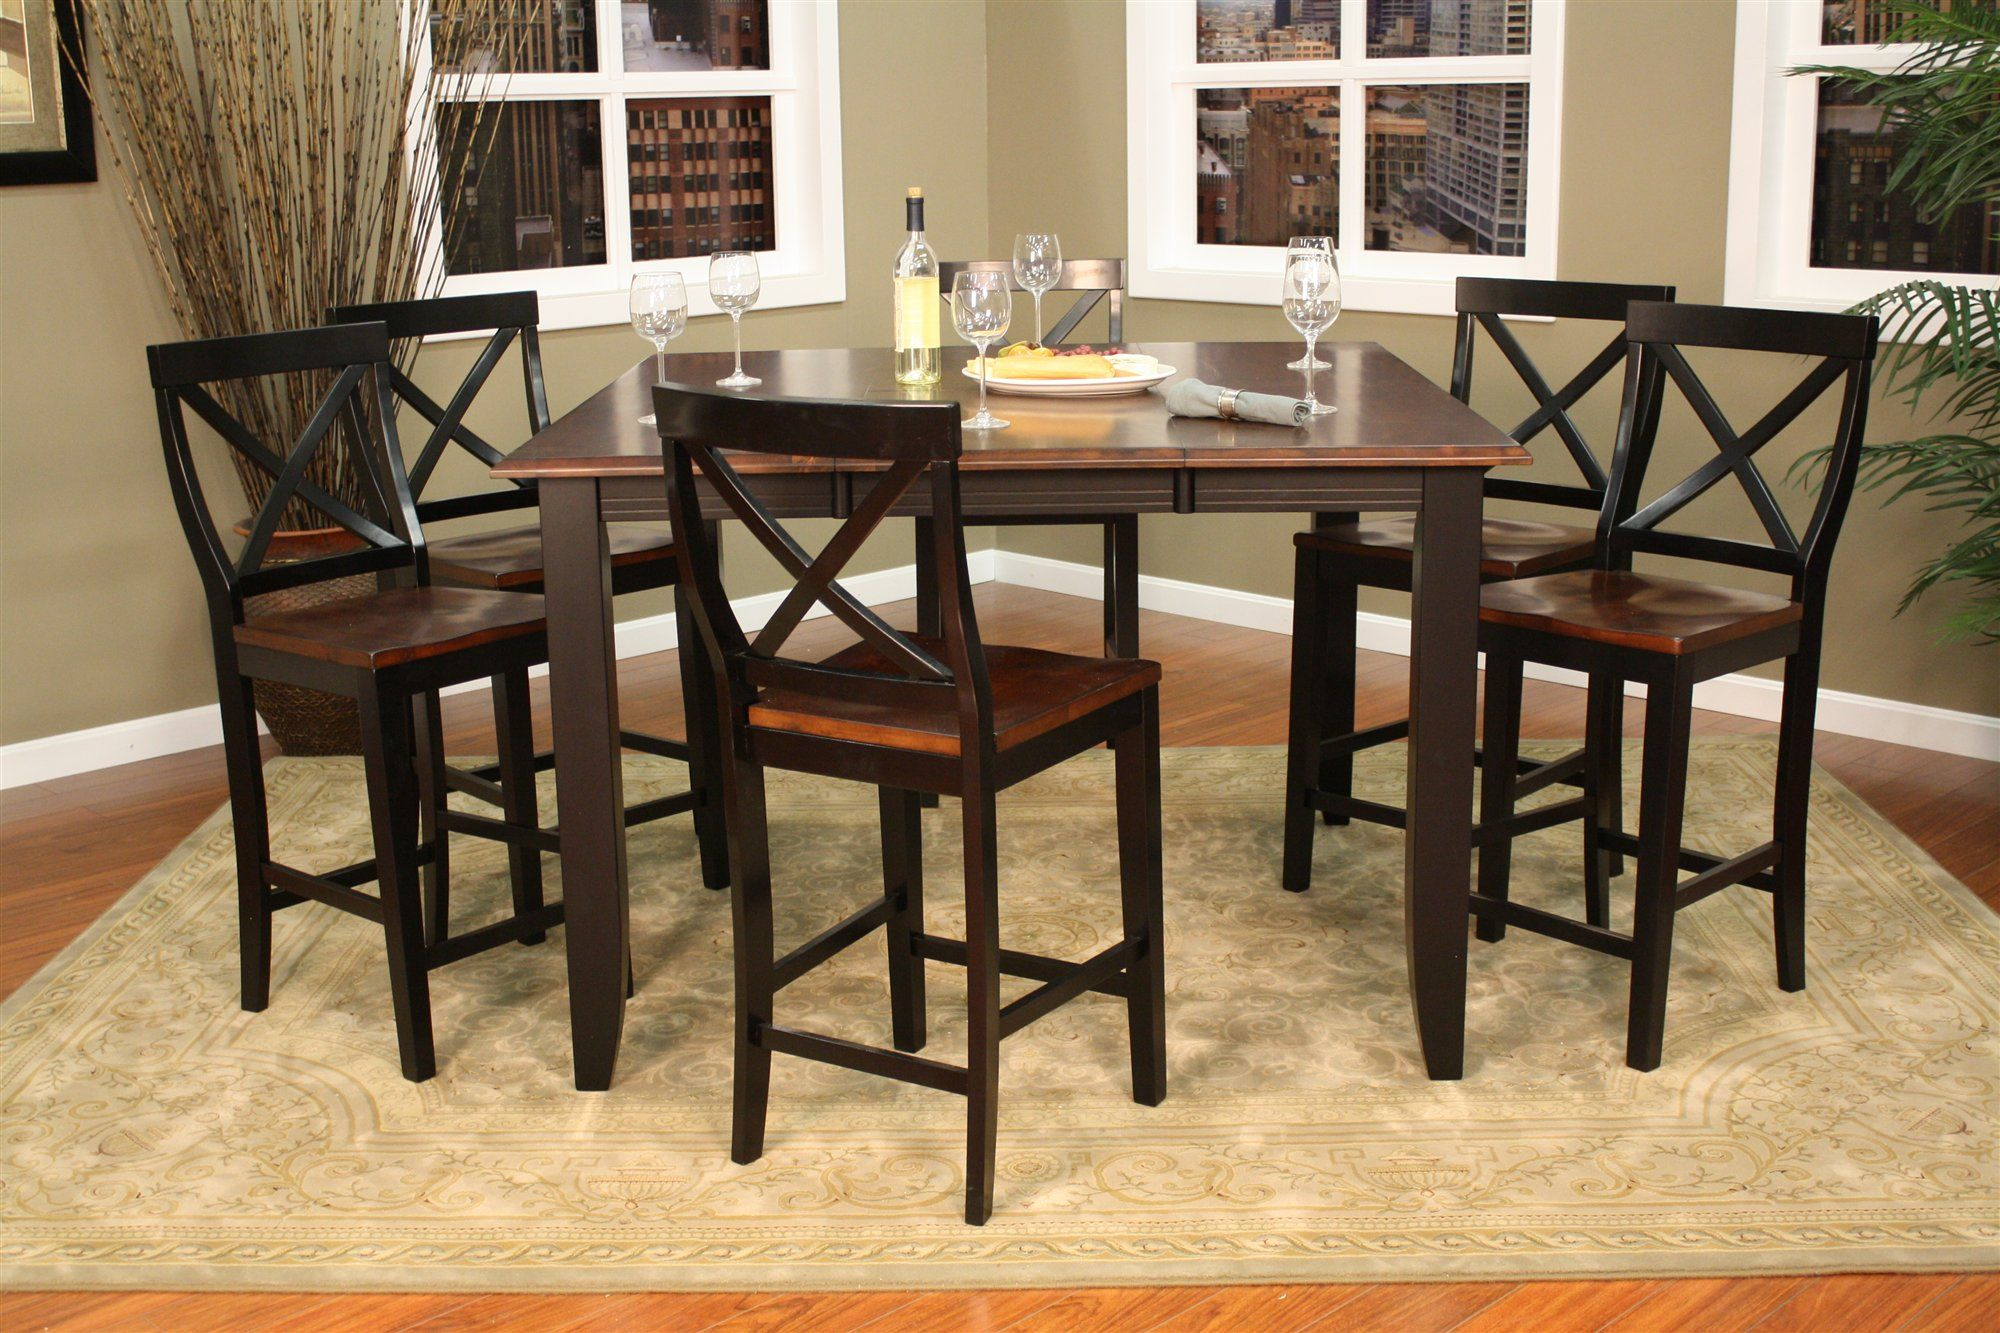 Dark Wood Round Counter Height Kitchen Table And 4 Chirs Magnificent Counter Height Kitchen Tables Inspiration Design